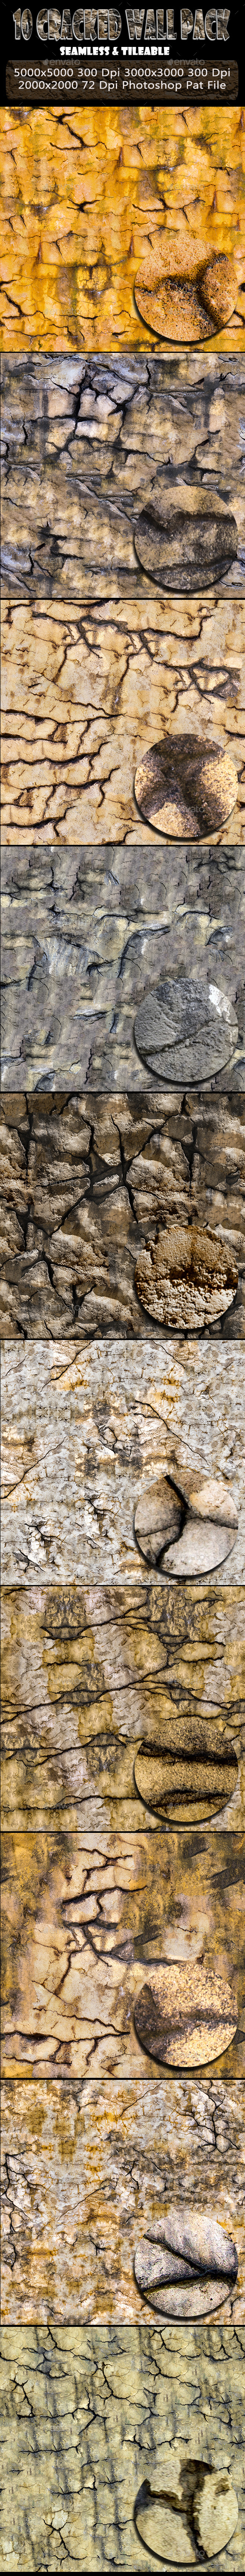 10 Cracked Wall Background Texture Pack - Abstract Backgrounds